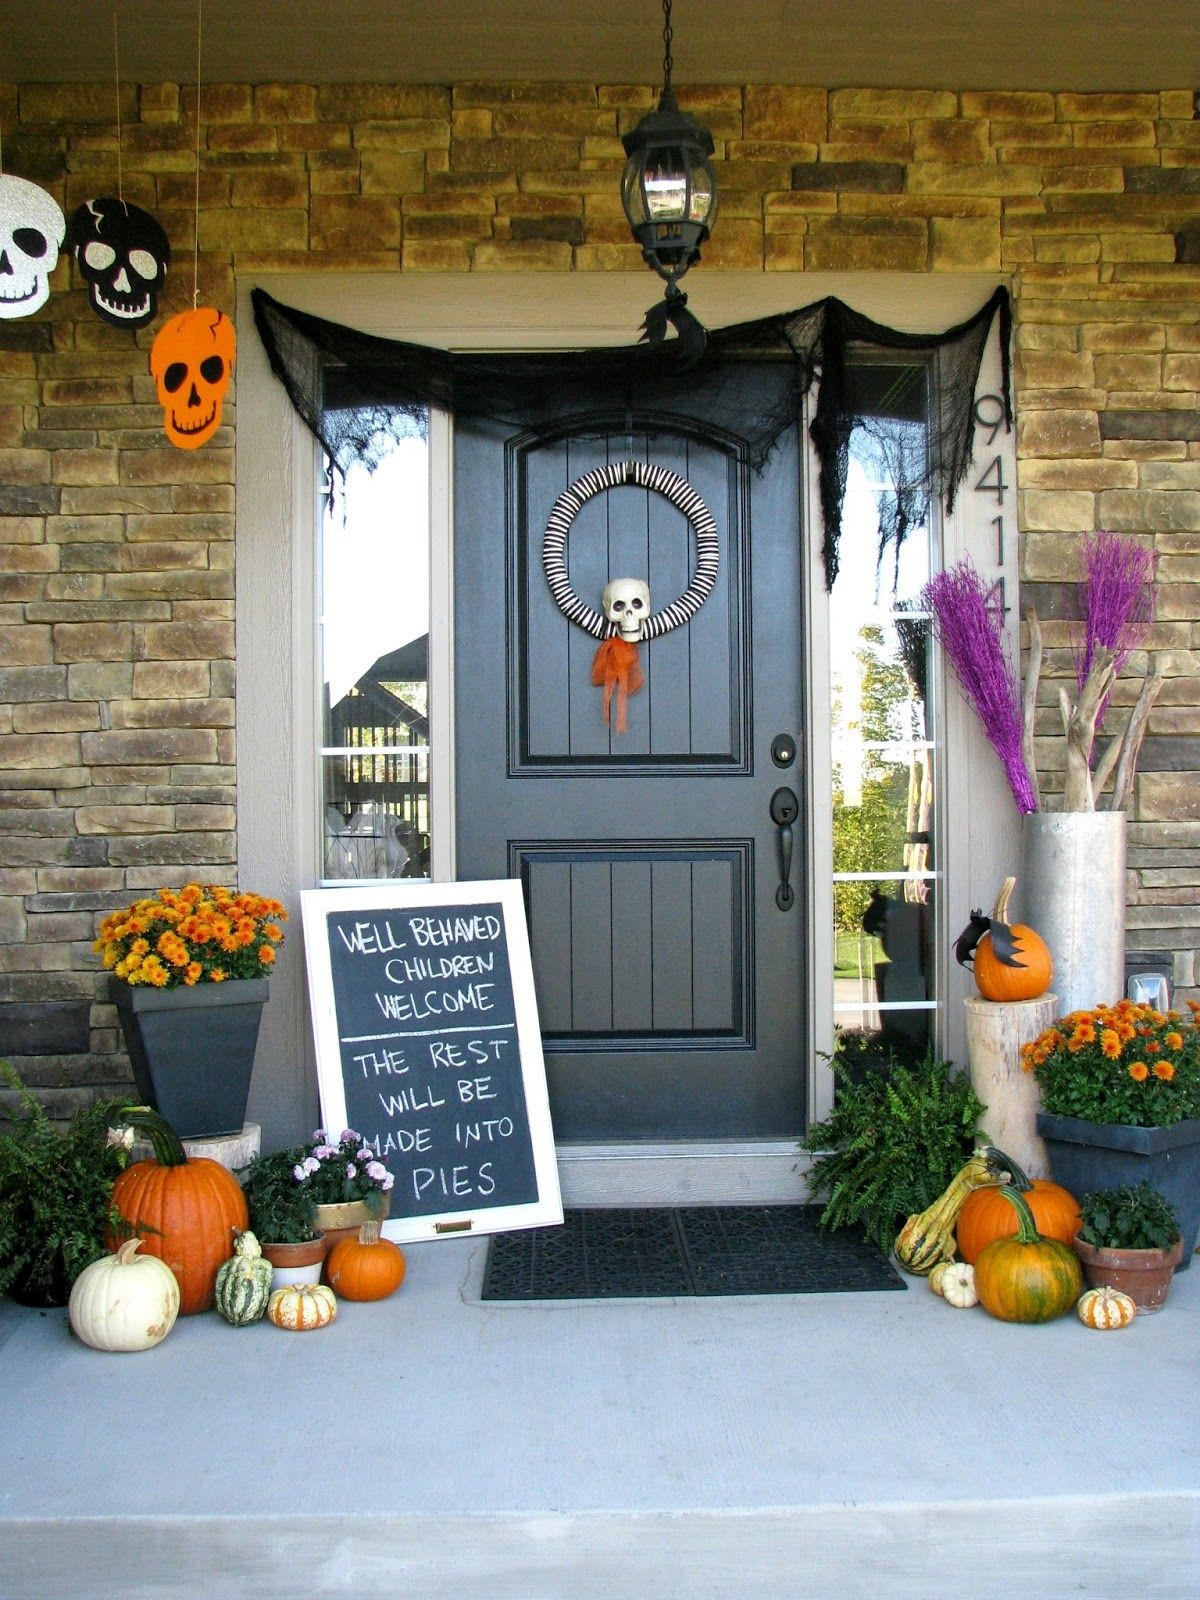 Cute Halloween Front Porch Decorations To Greet Your Guests - Cool chalkboard halloween decor